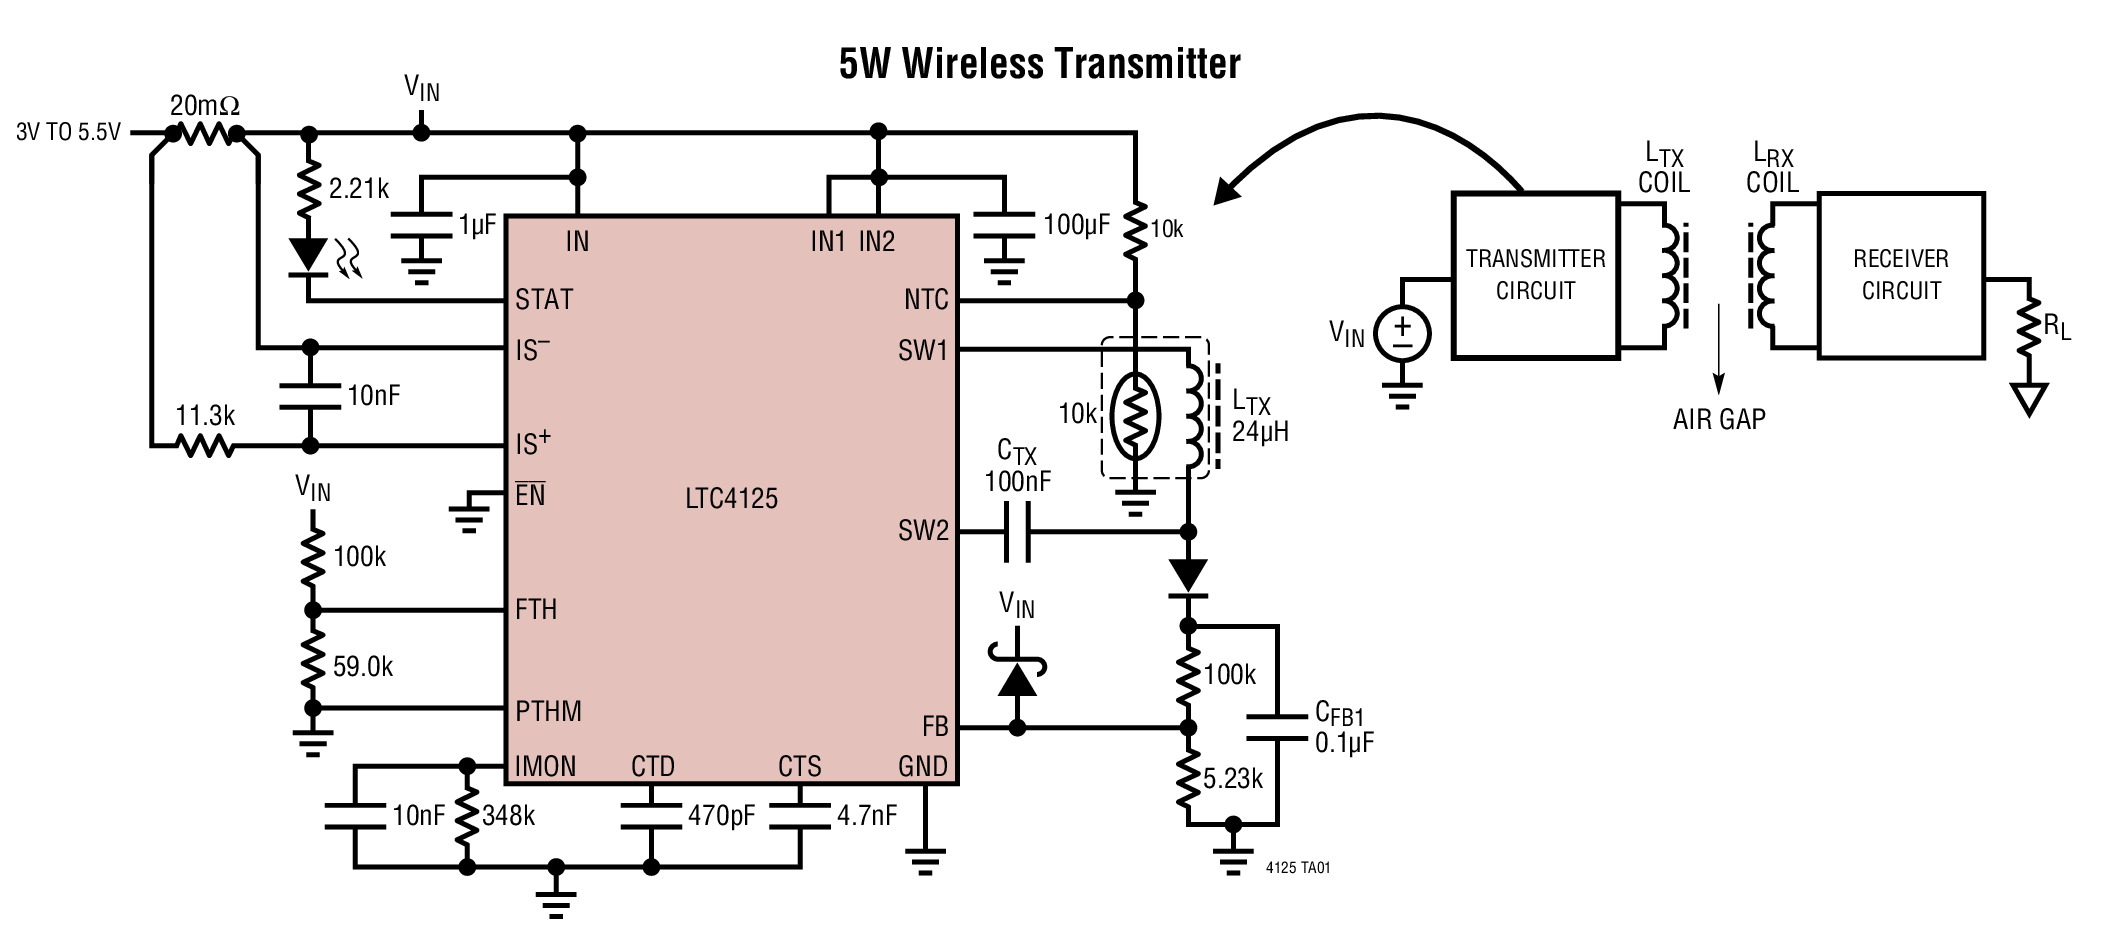 Saw Transmitter And Receiver Schematic Smart Wiring Diagrams Infrared Circuit Lt Energy Wireless Wire Center U2022 Rh 108 61 128 68 Pc Ir